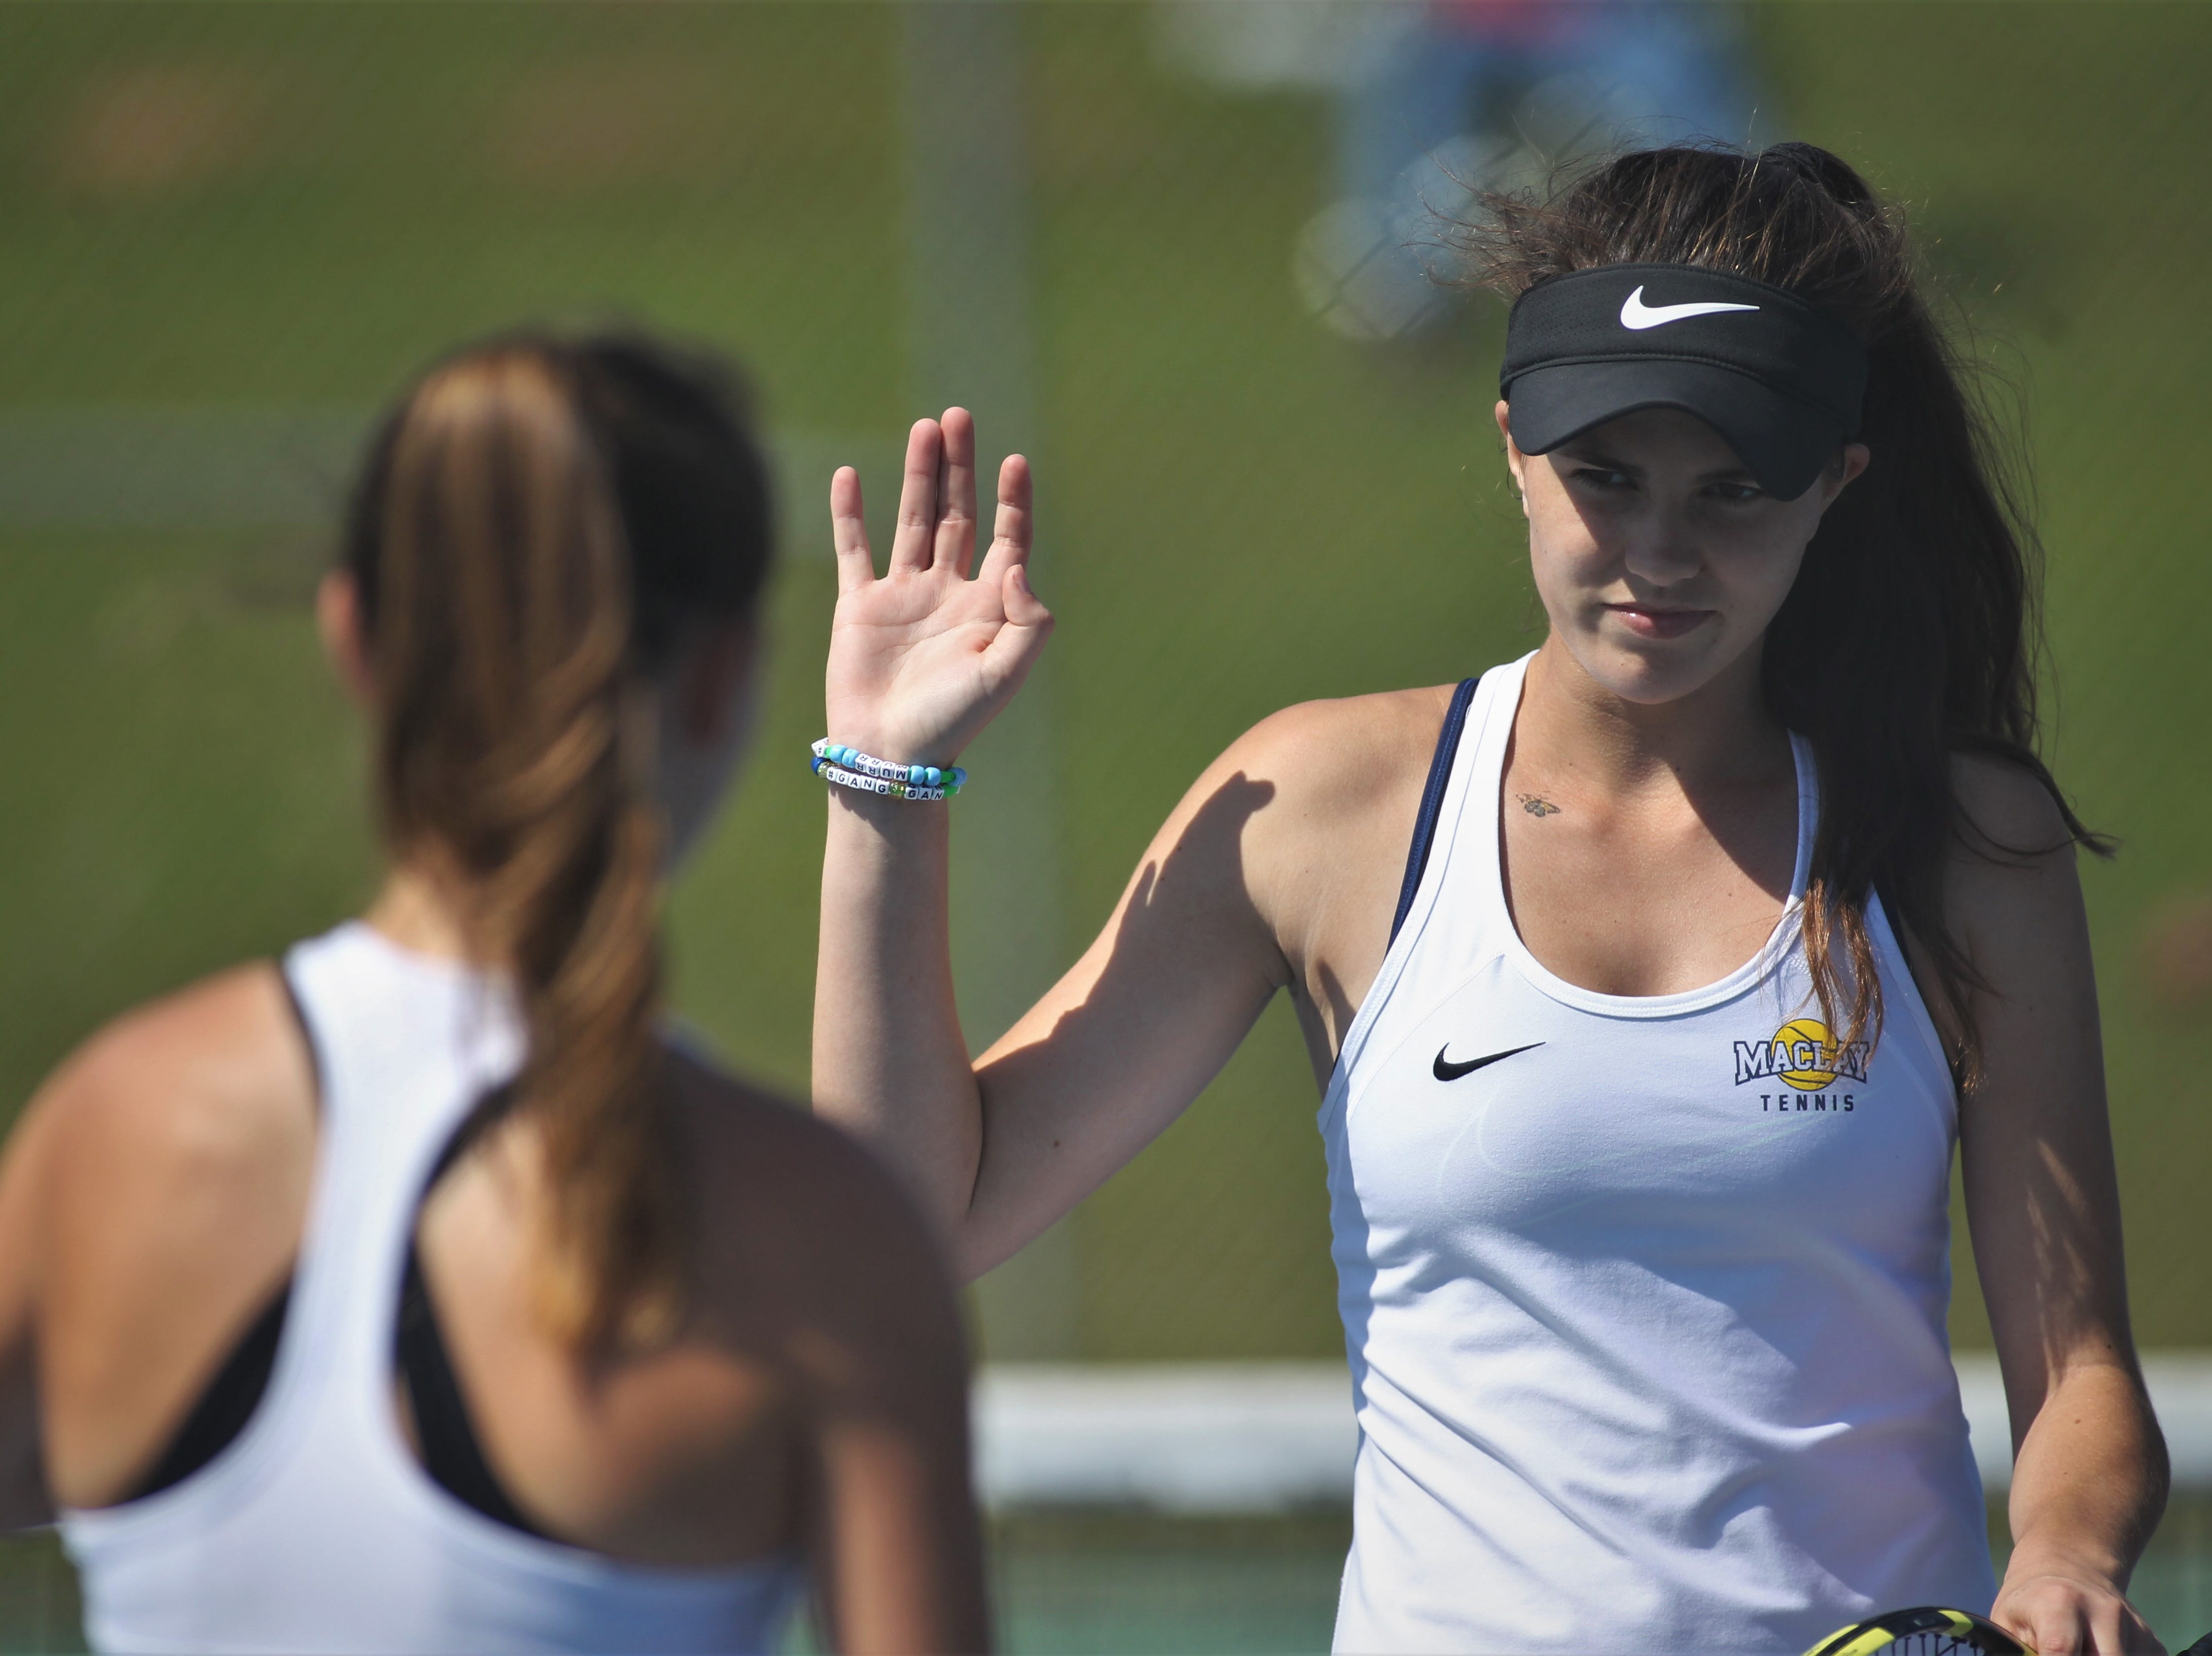 Maclay's Madison Perkins prepares to high five doubles partner Rachael Stockel after winning a point during the boys and girls tennis 2019 City Tournament at Tom Brown Park on March 12, 2019.